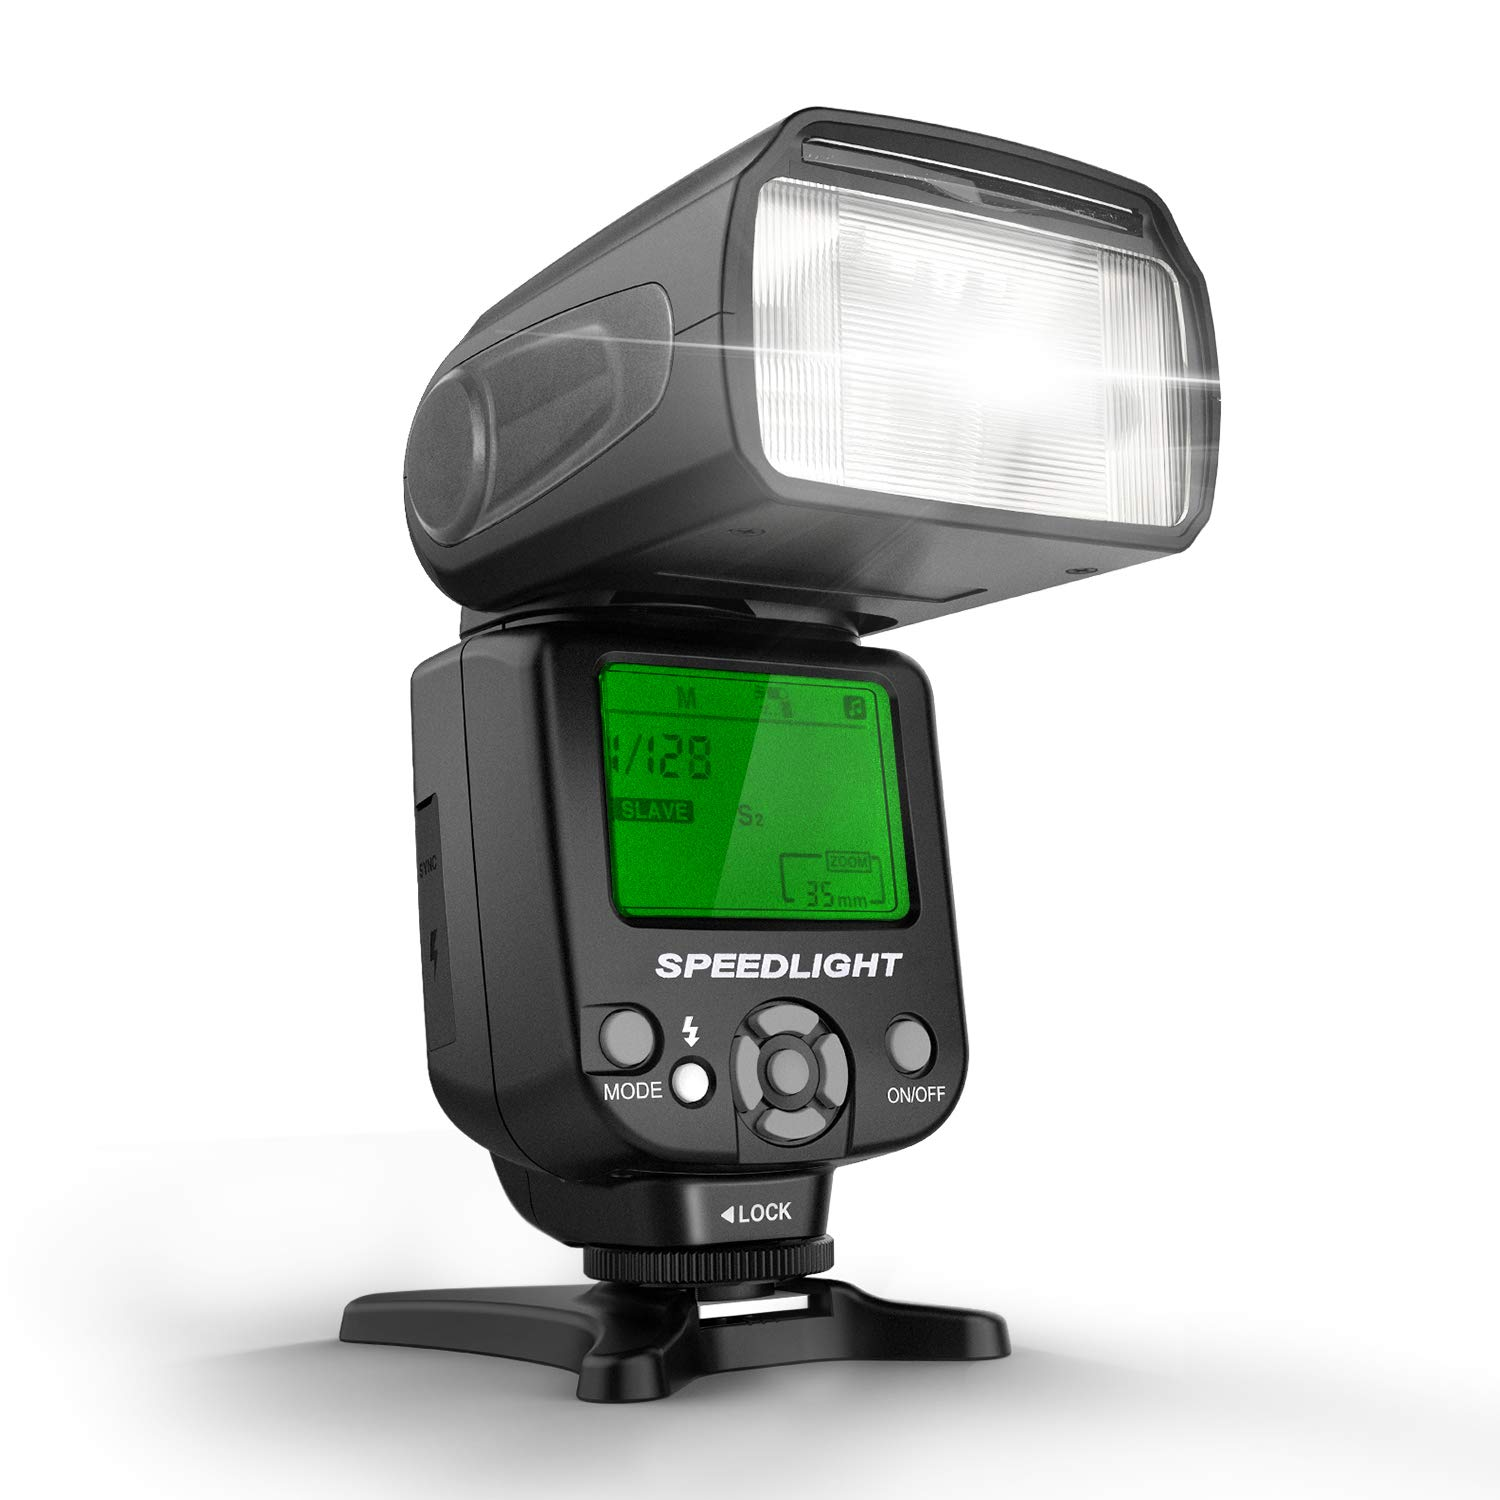 GEEKOTO Flash Speedlite, Off-Camera Flash, Flash Strobe Light, Flash Monolight GN38 with LCD Display for Canon Nikon and Other DSLR Cameras with Standard Hot Shoe by GEEKOTO